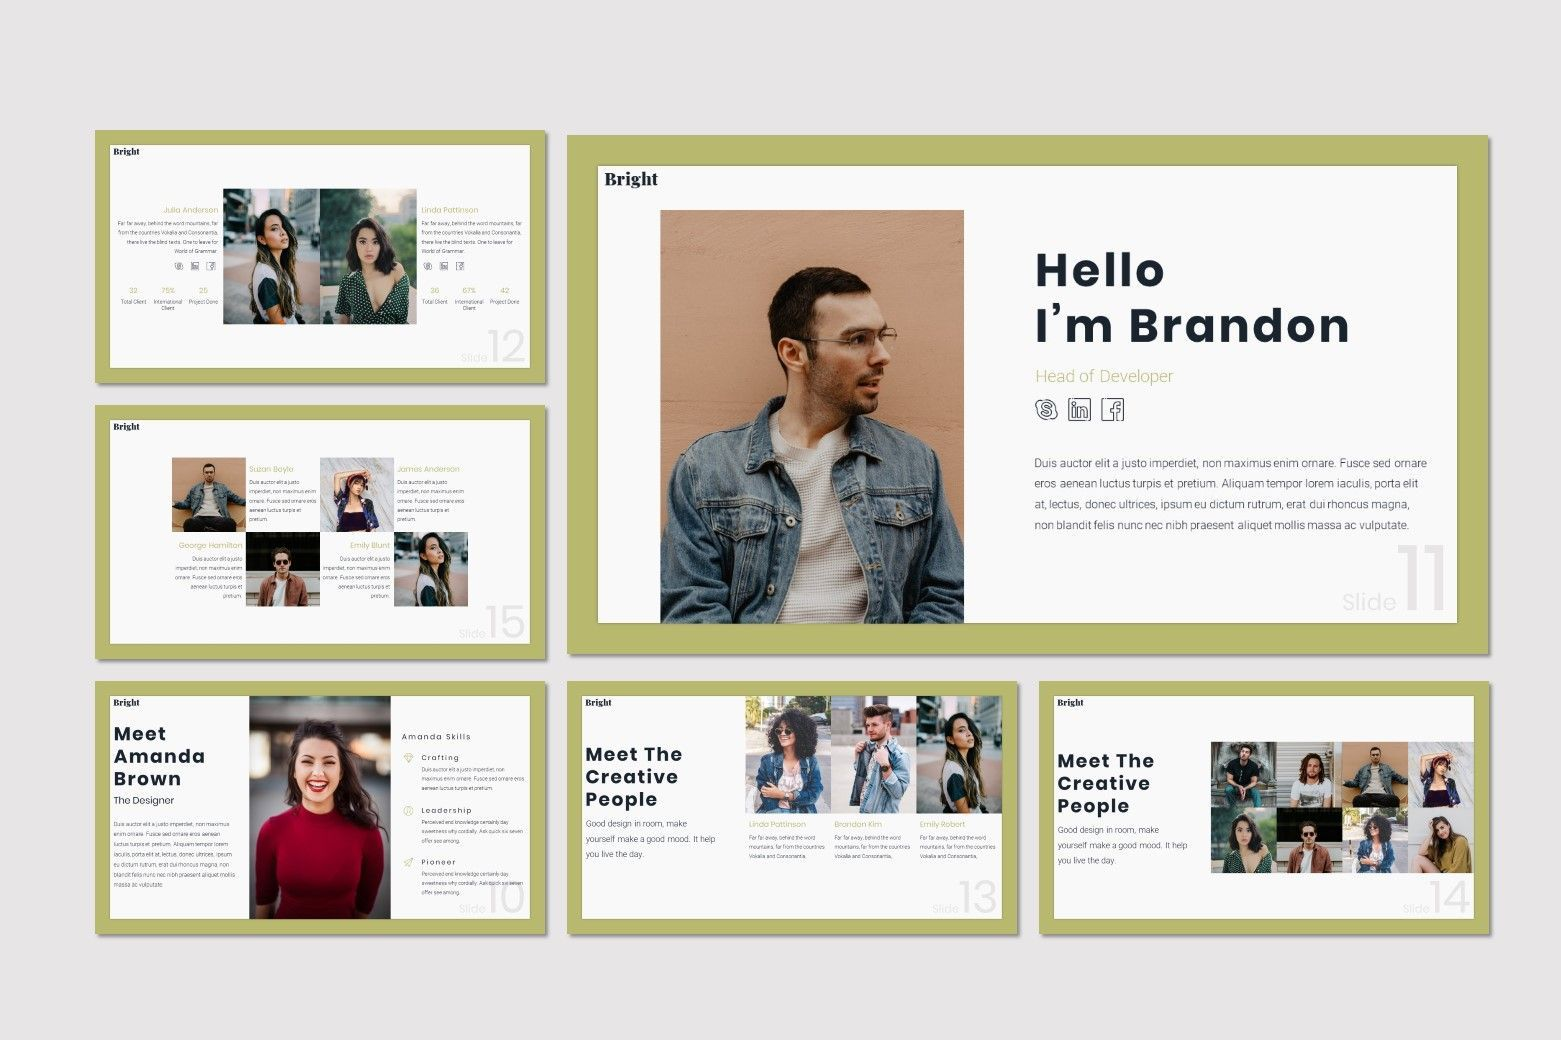 Bright - Google Slides Template, Slide 3, 07587, Presentation Templates — PoweredTemplate.com